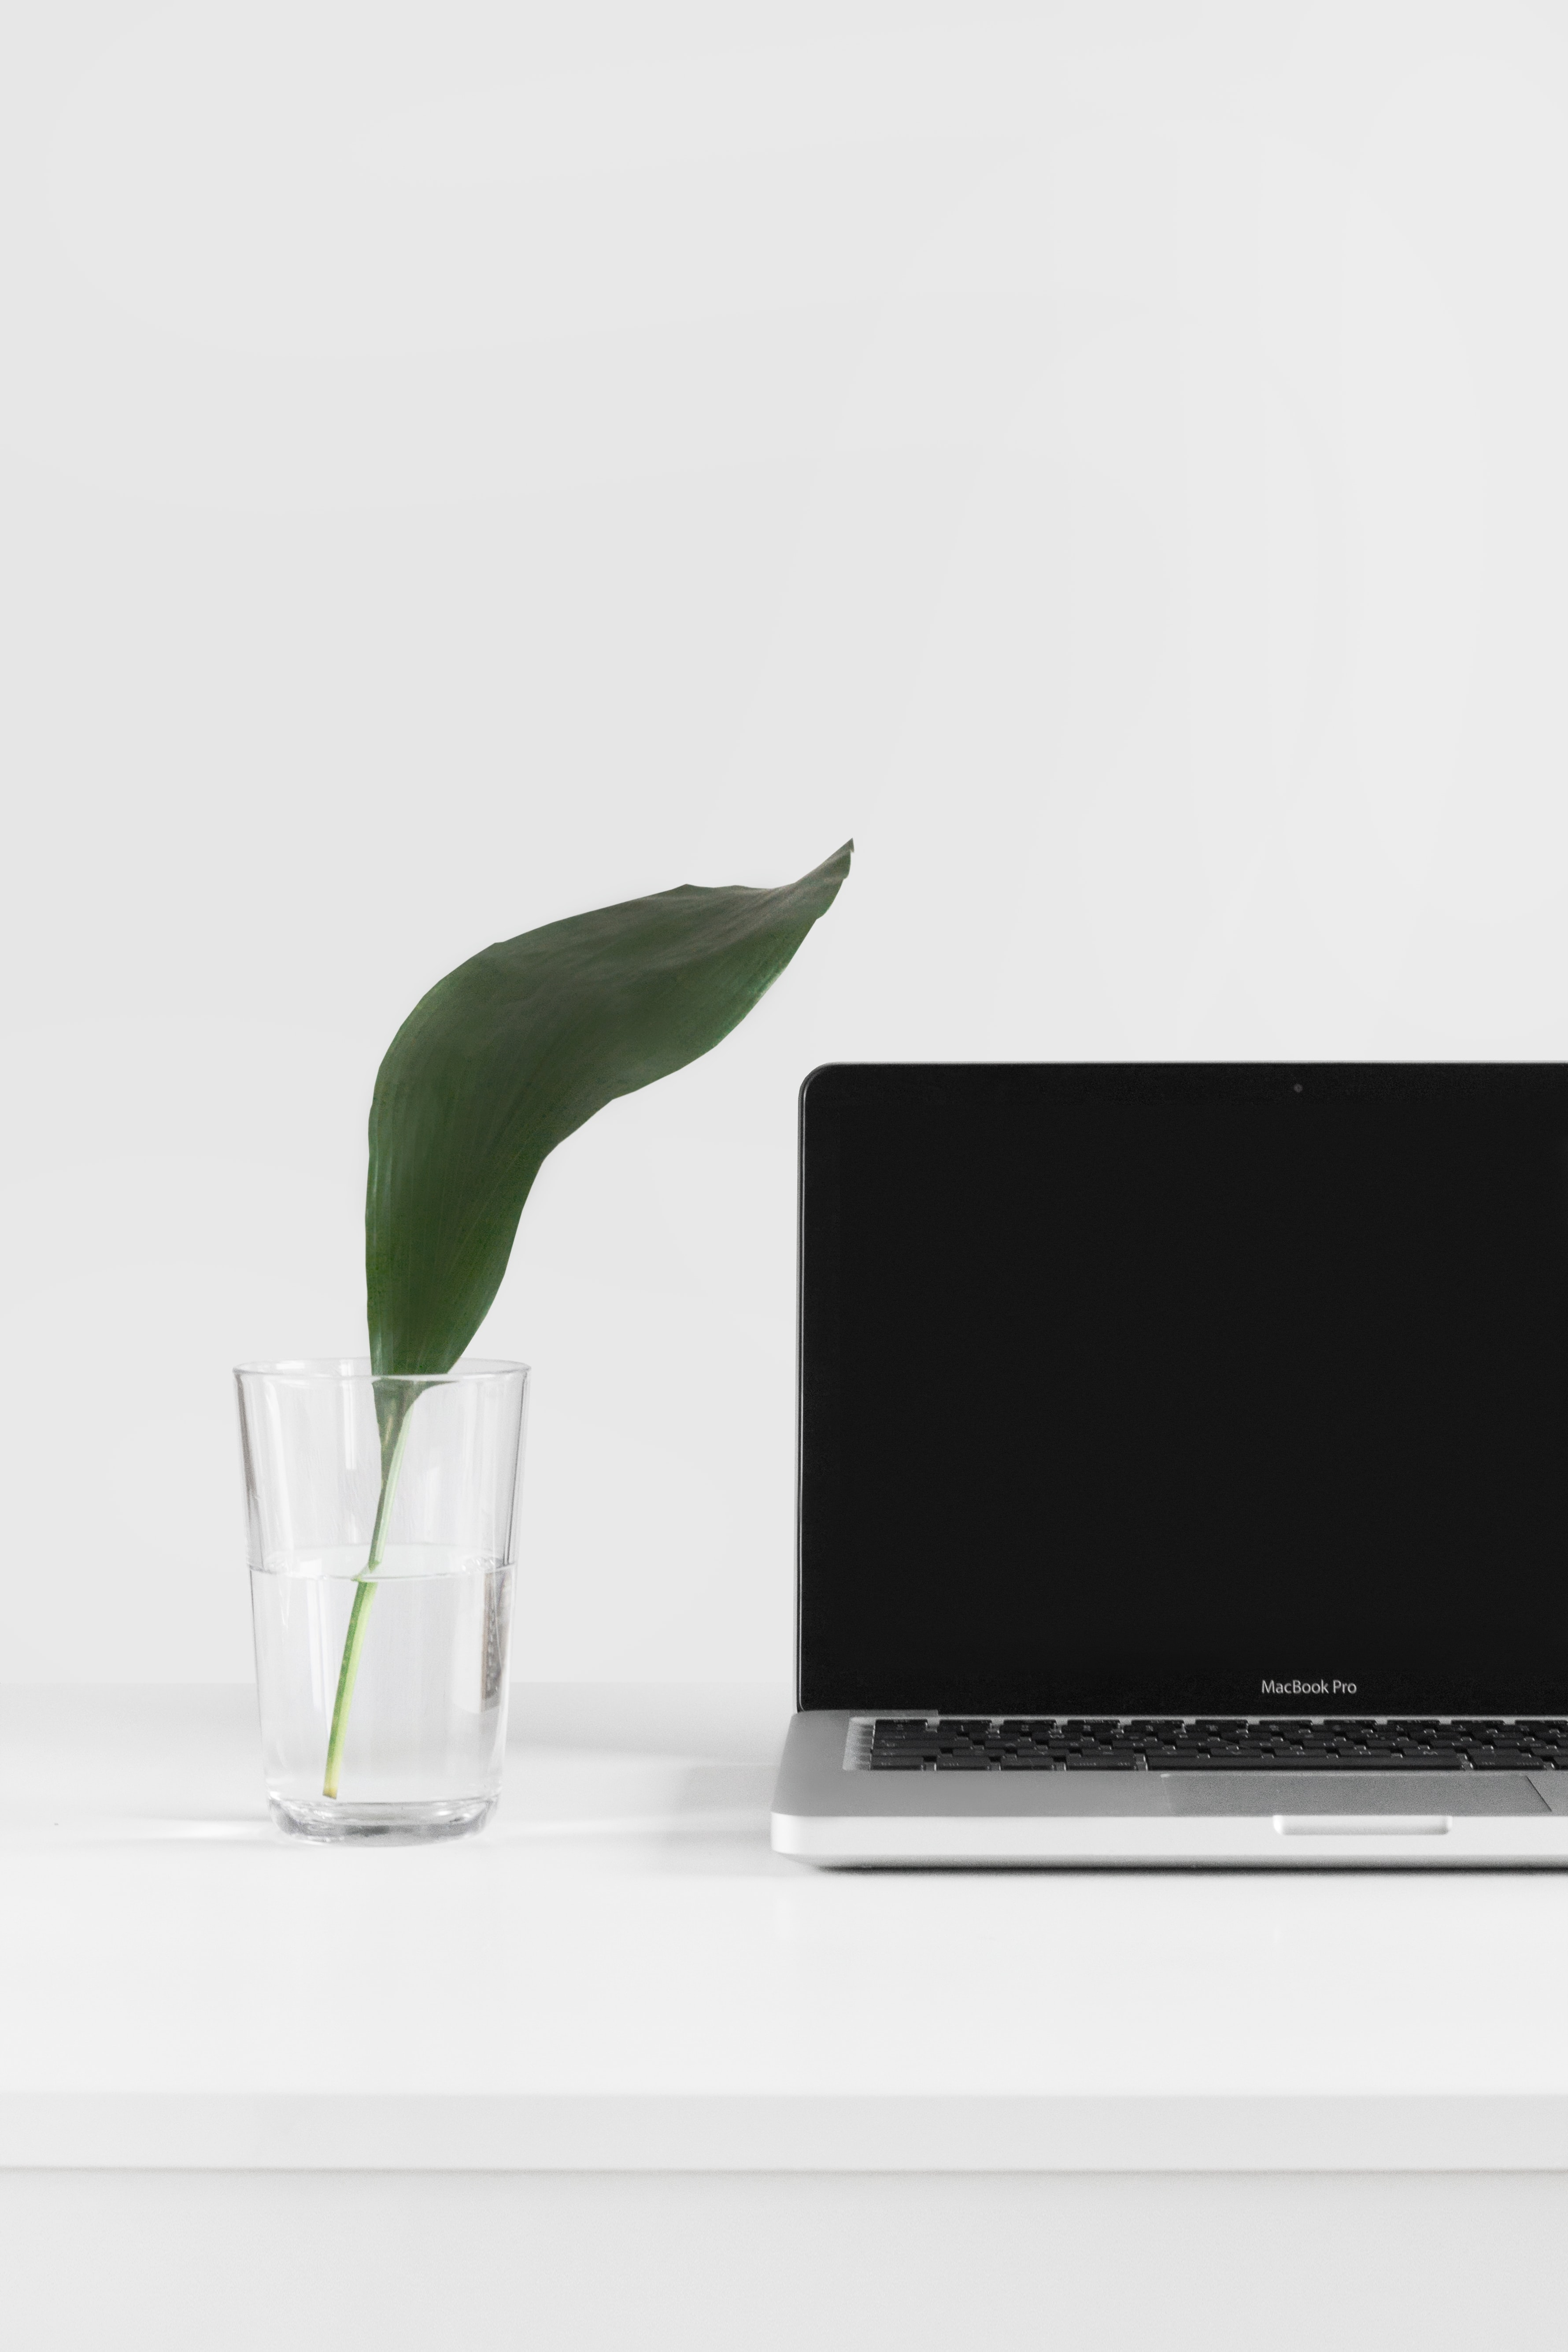 A green leaf in a glass of water next to a MacBook